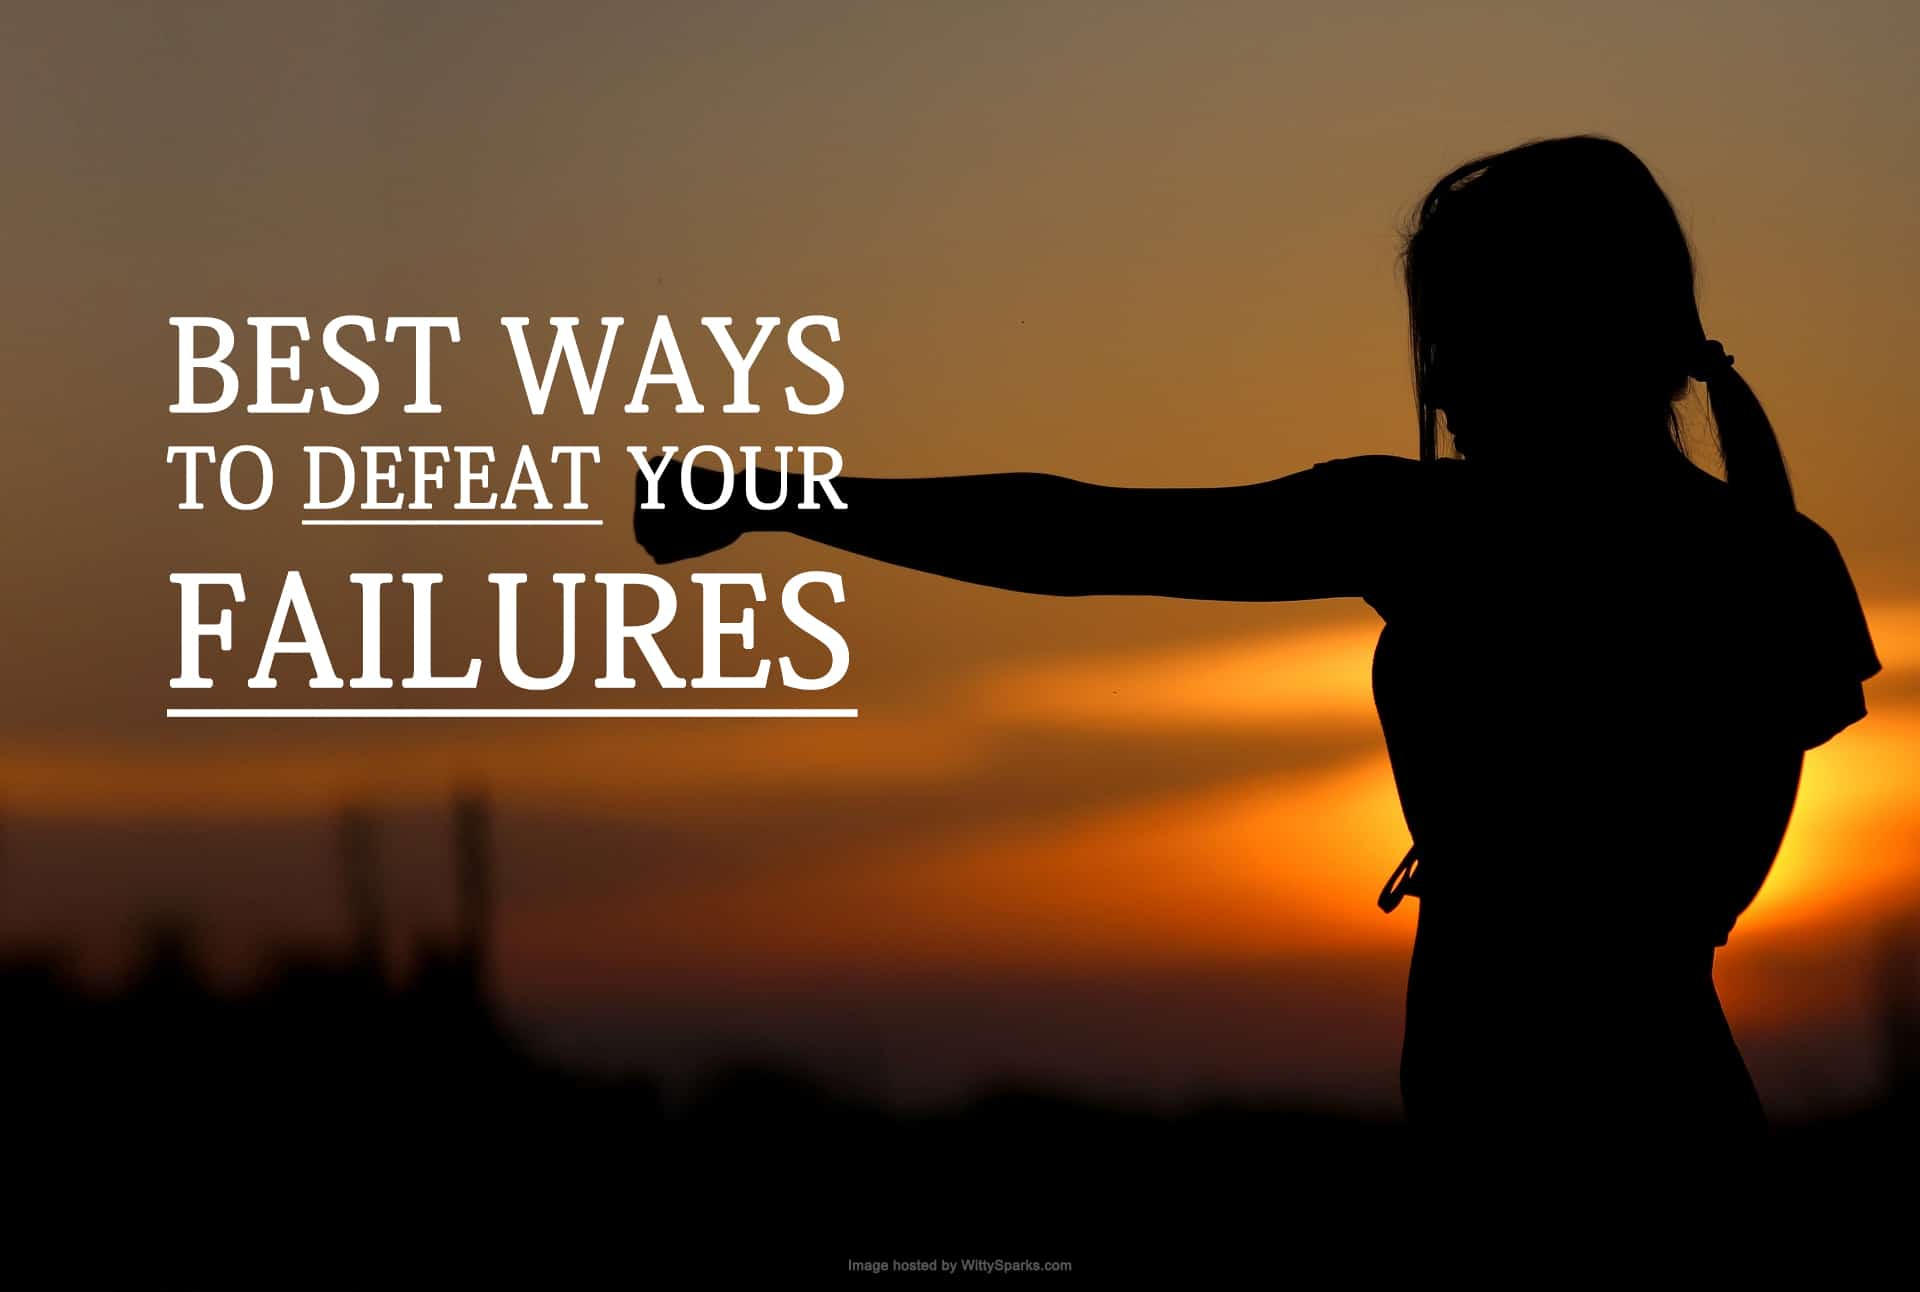 Best ways to defeat your failures